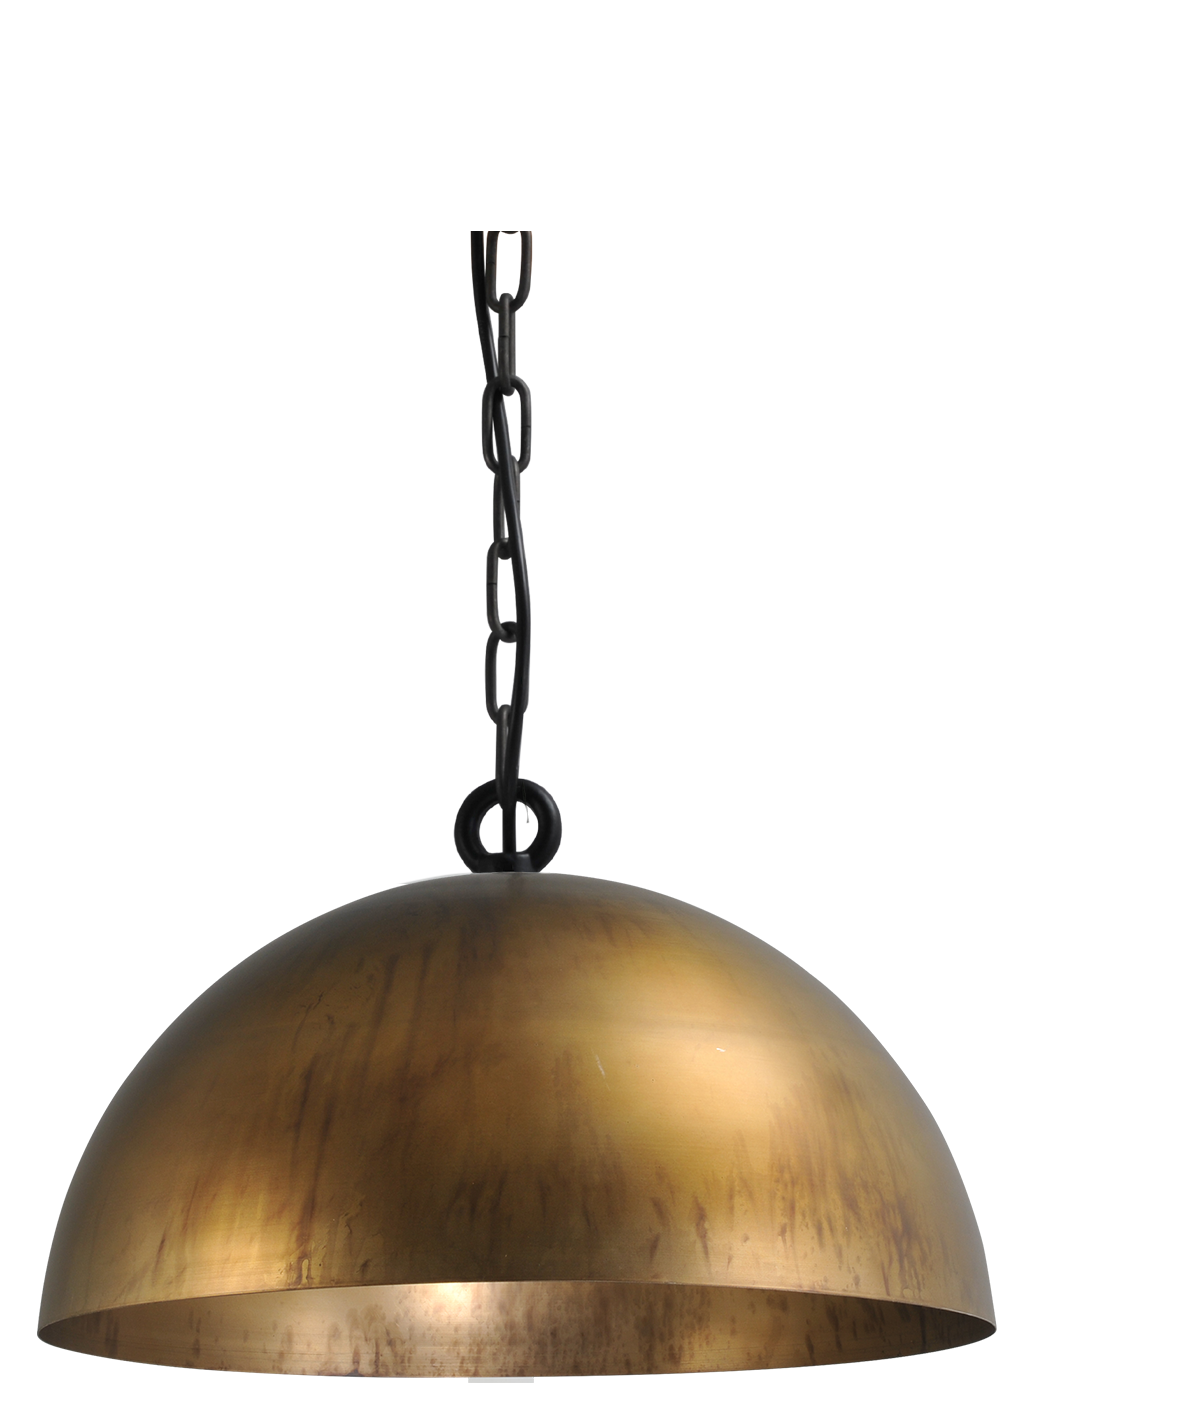 Larino Antique Brass HL LARINO D.40CM ANTIQUE BRASS OUTSIDE